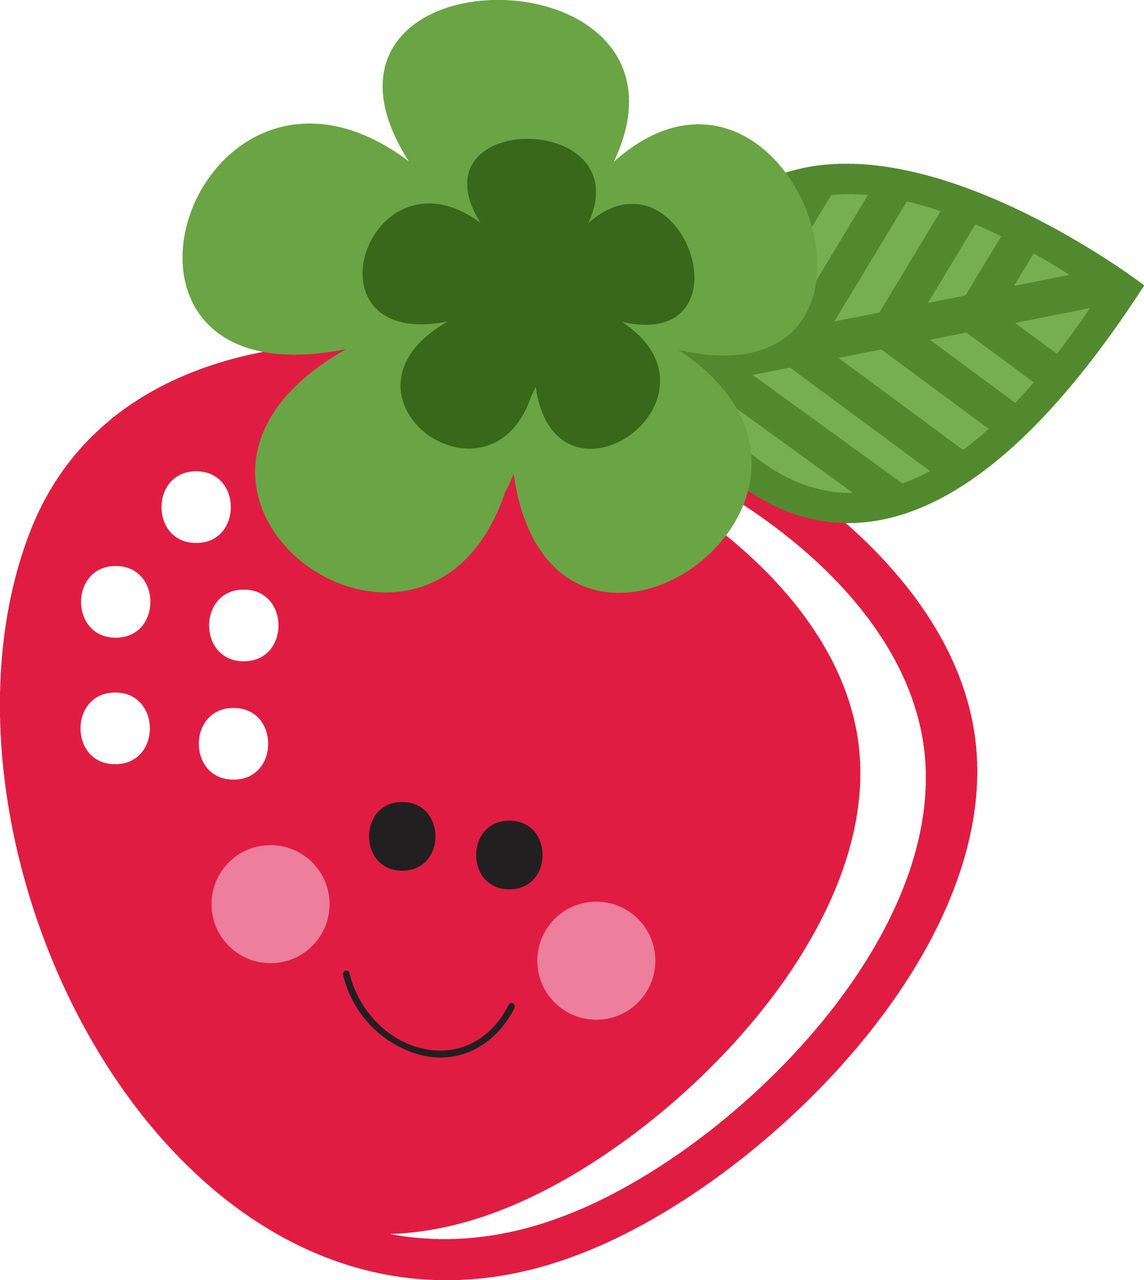 ppbn designs cute strawberry 0 50 http www ppbndesigns com rh pinterest ca strawberry clip art free strawberry clipart free